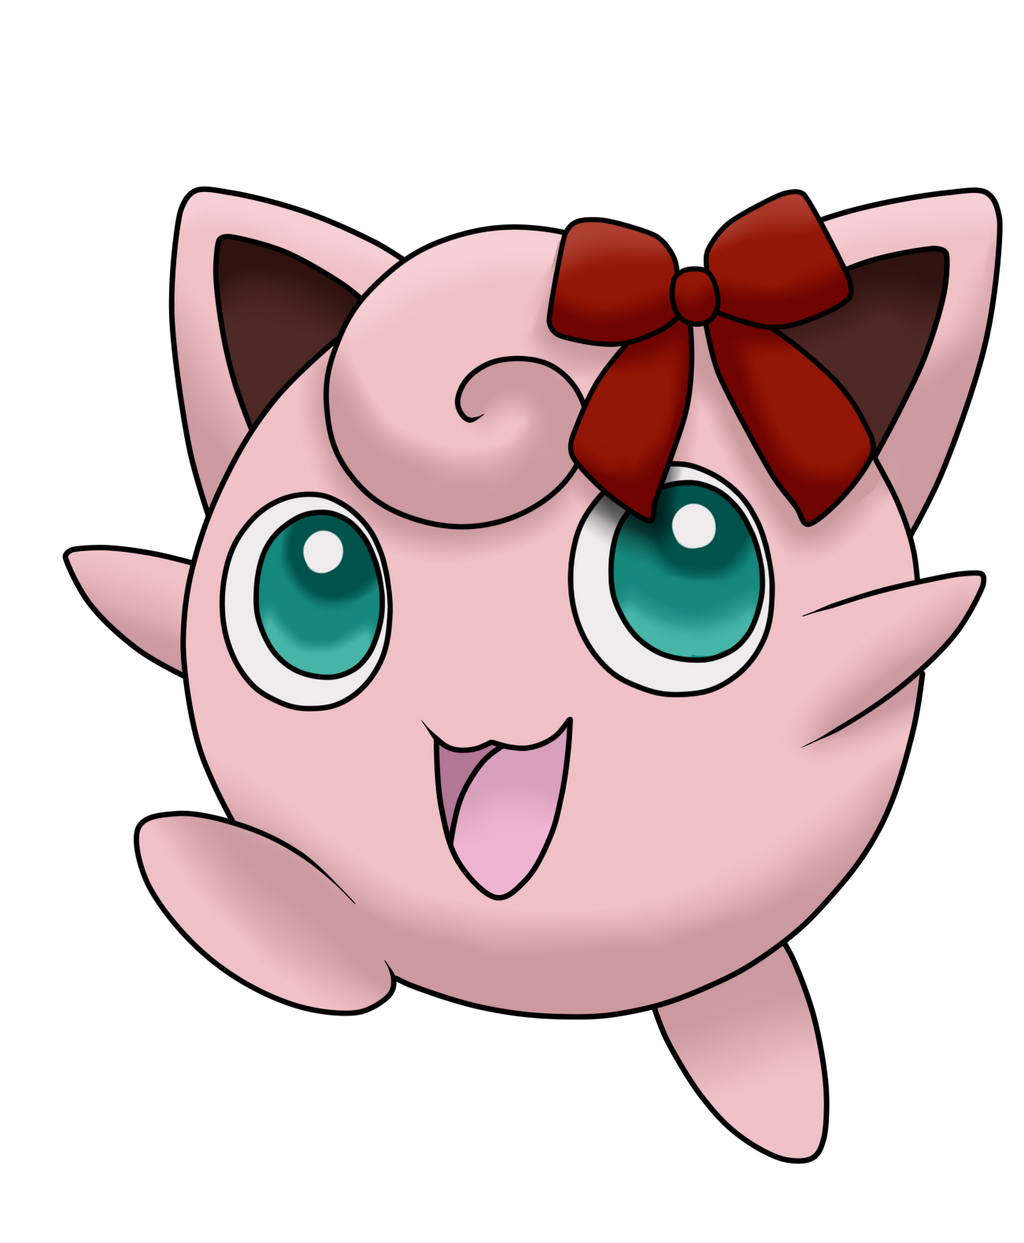 Cute jigglypuff wallpaper